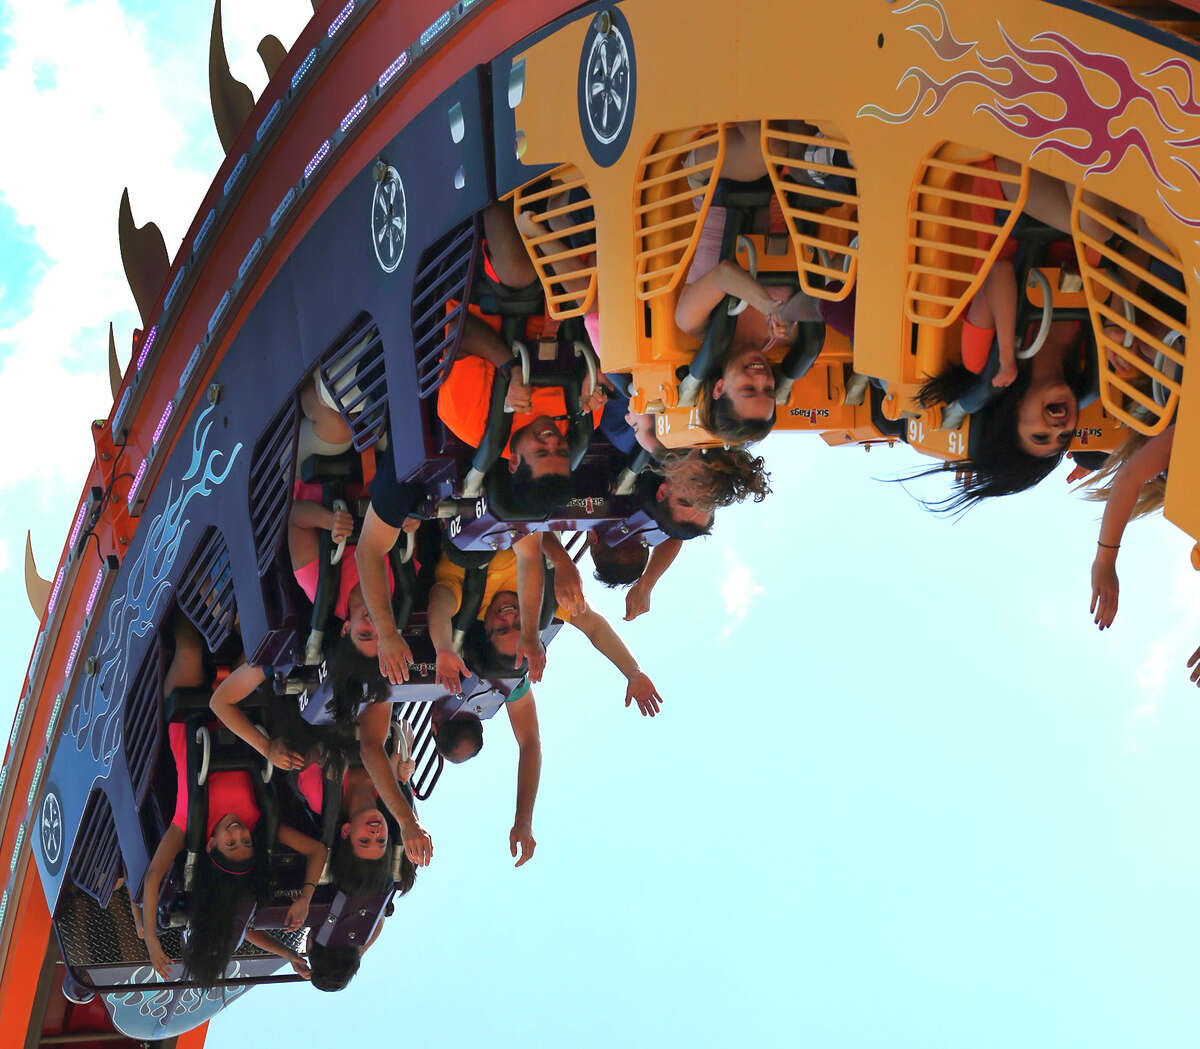 Triple your thrills at Fiesta Texas. Six Flags Fiesta Texas unveiled three new rides dubbed the